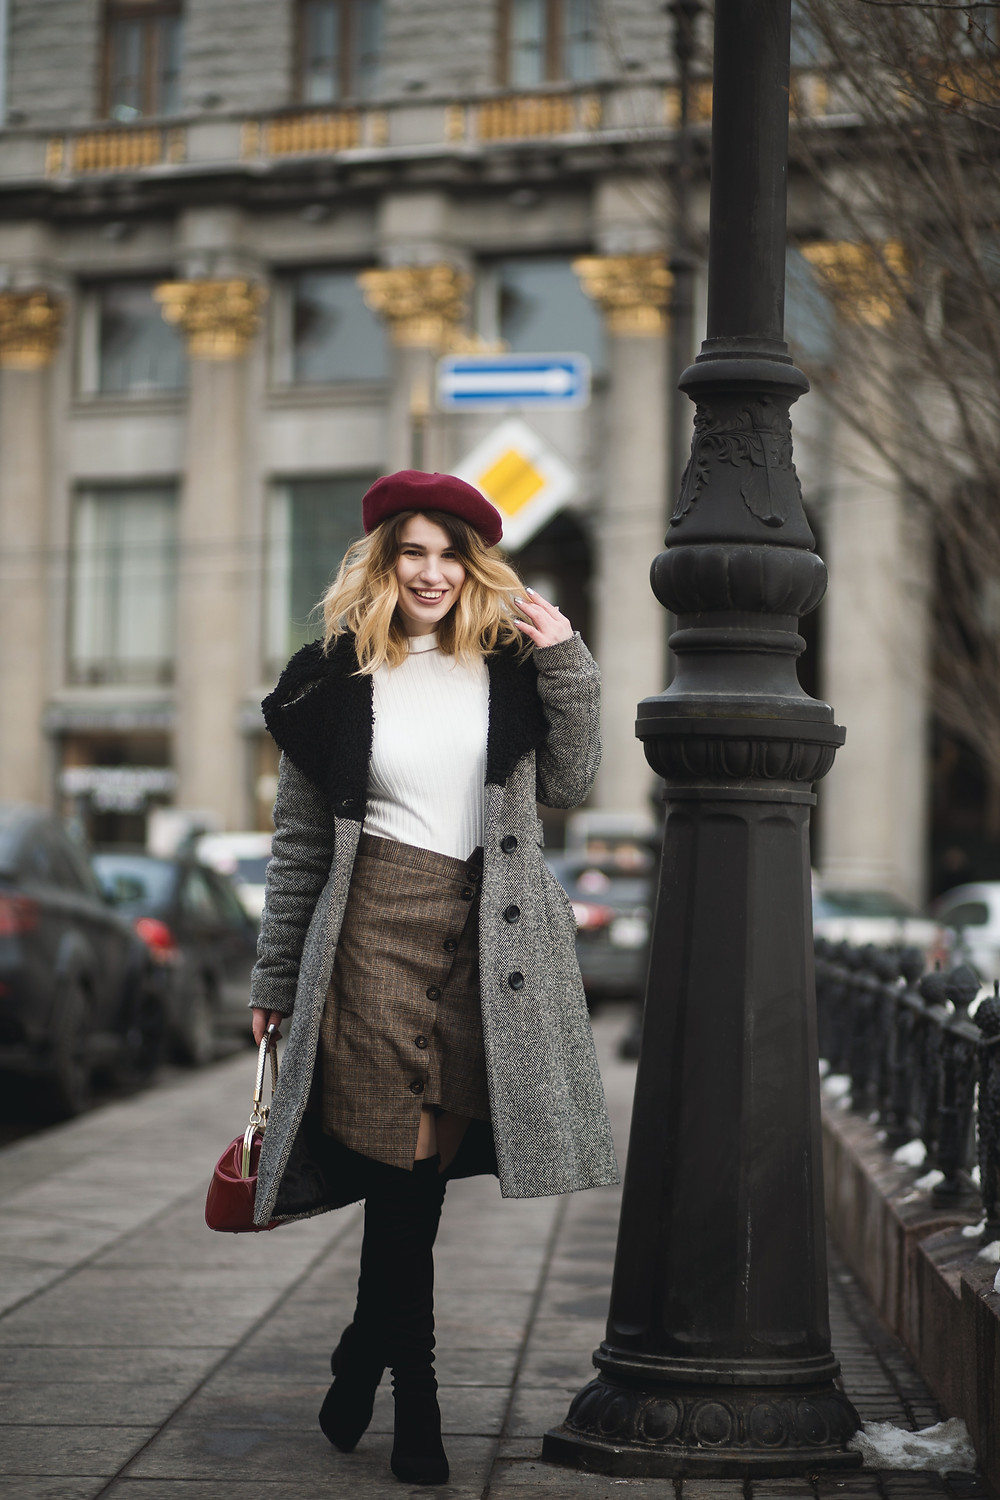 preppy and stylish woman in a gorgeous coat with fur trim